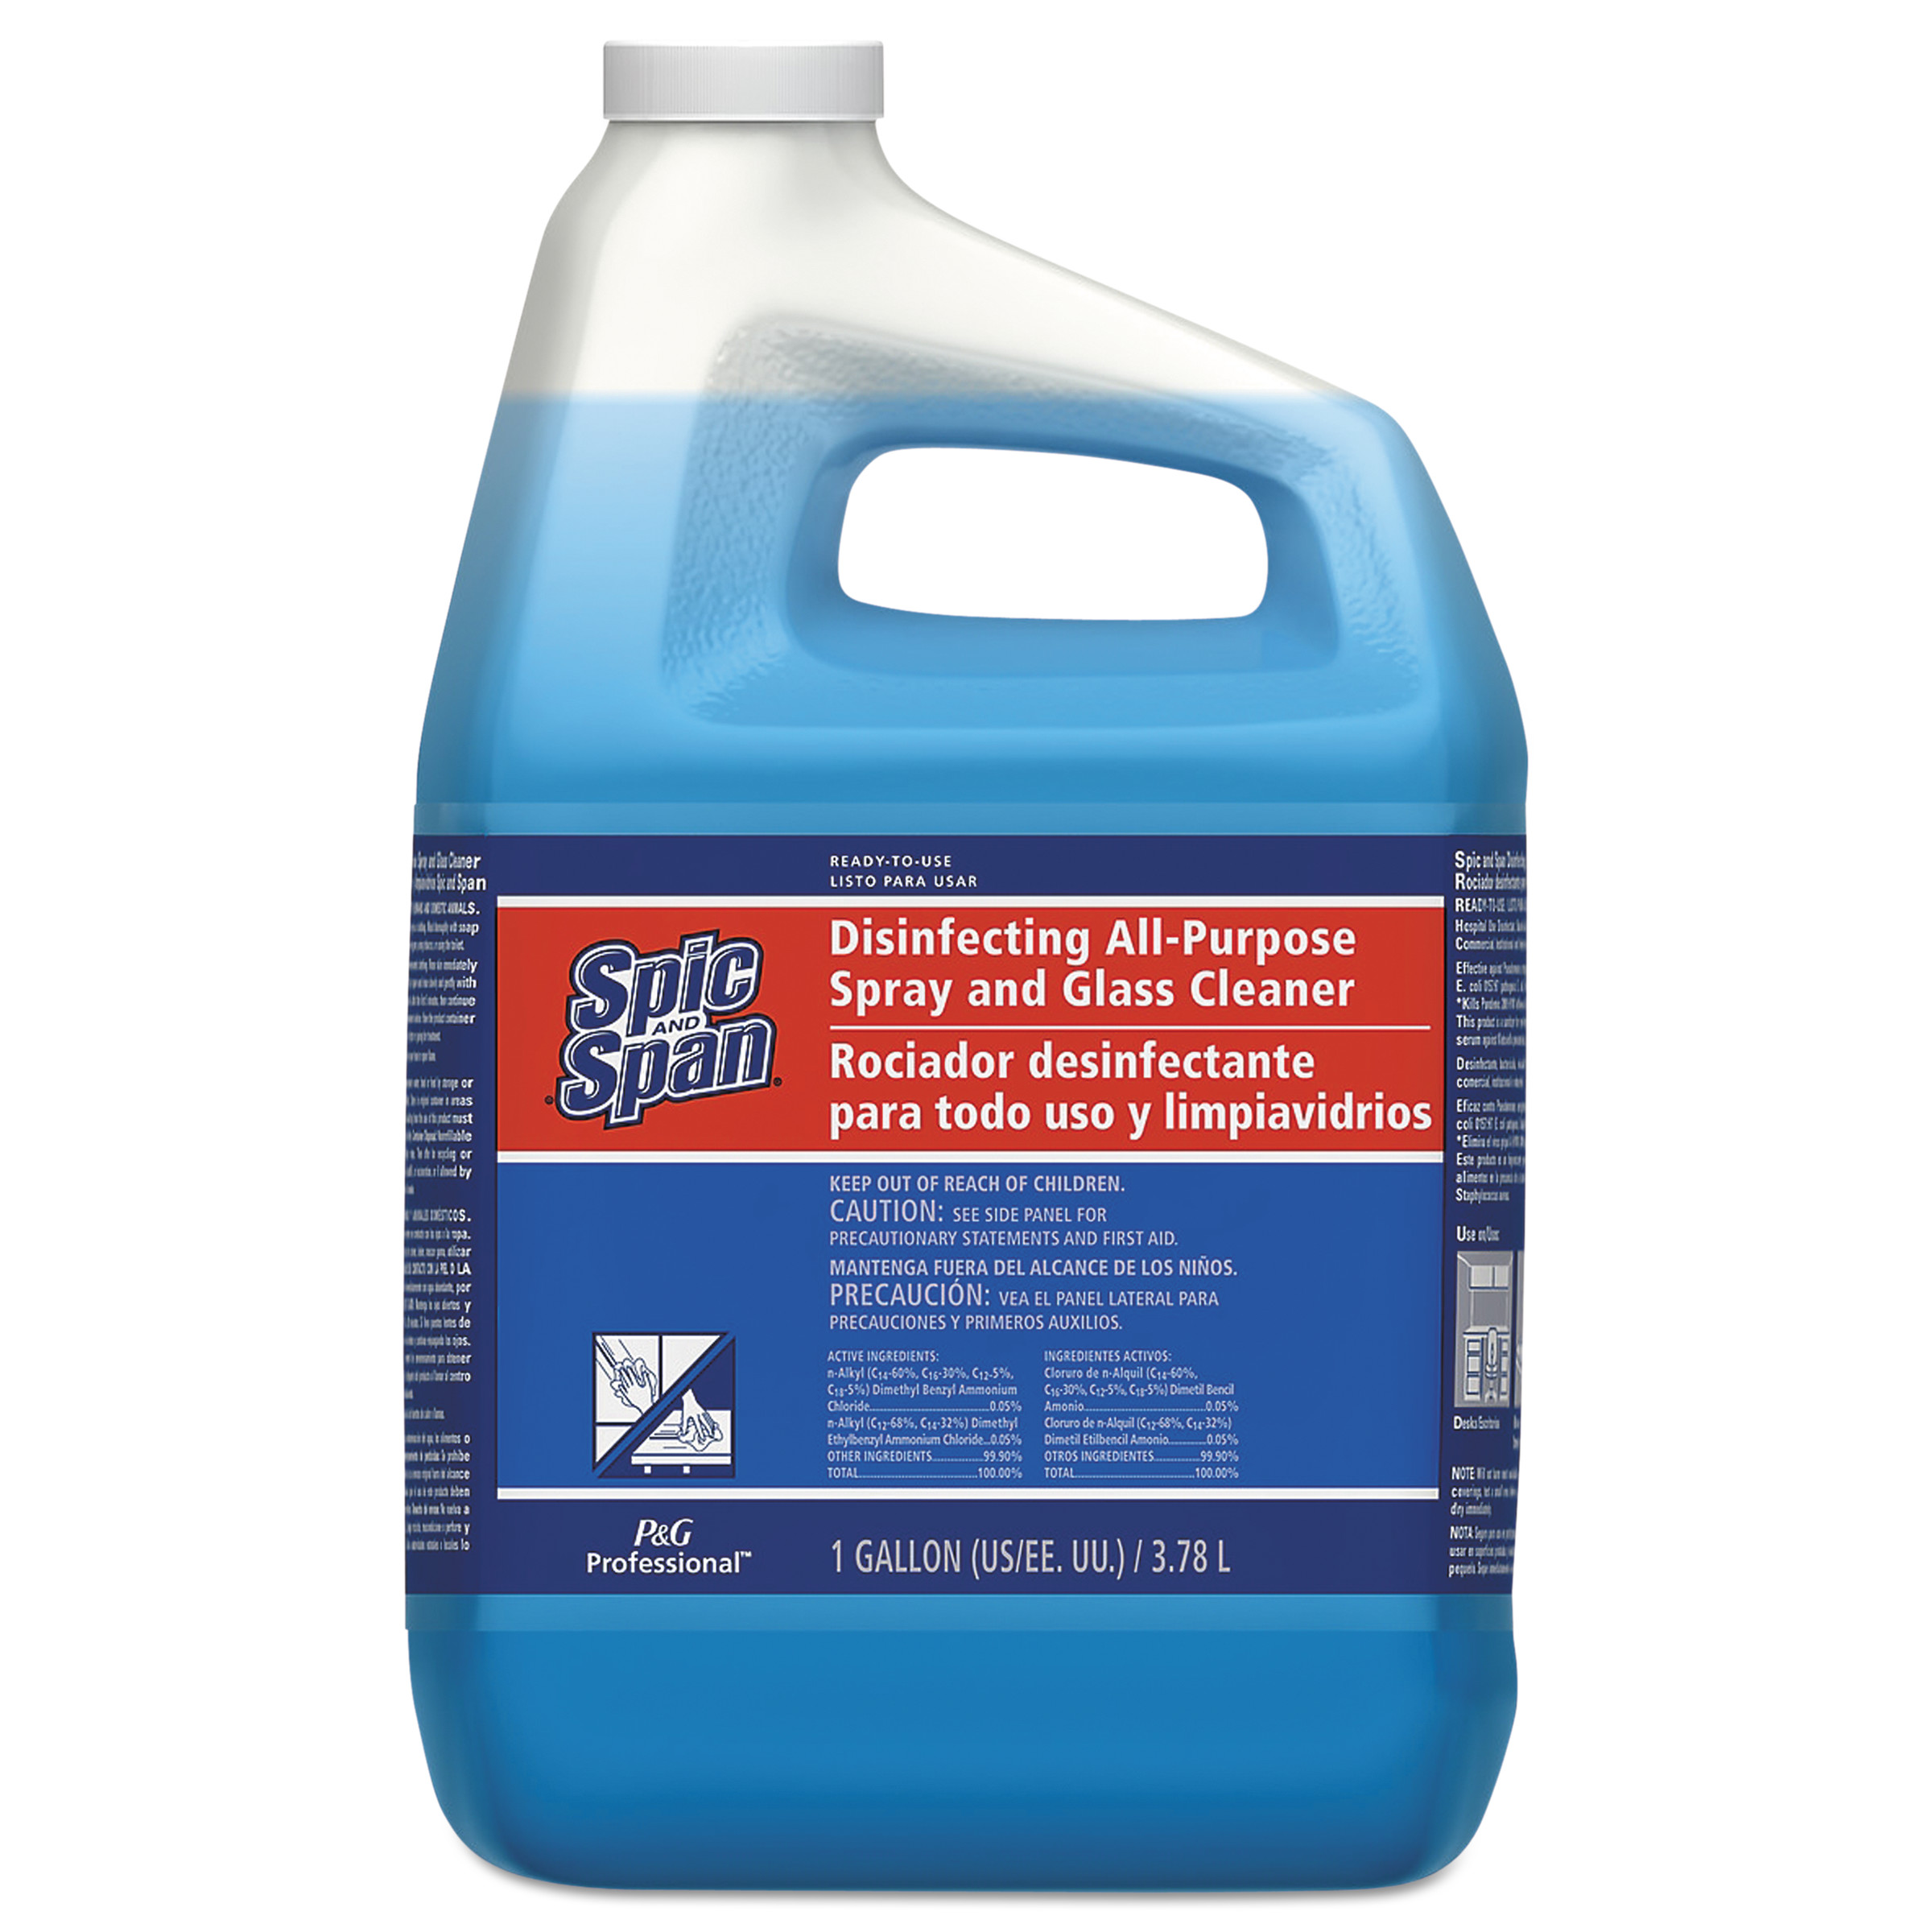 Spic and Span Disinfecting All-Purpose Spray and Glass Cleaner, Fresh Scent, 1 gal Bottle